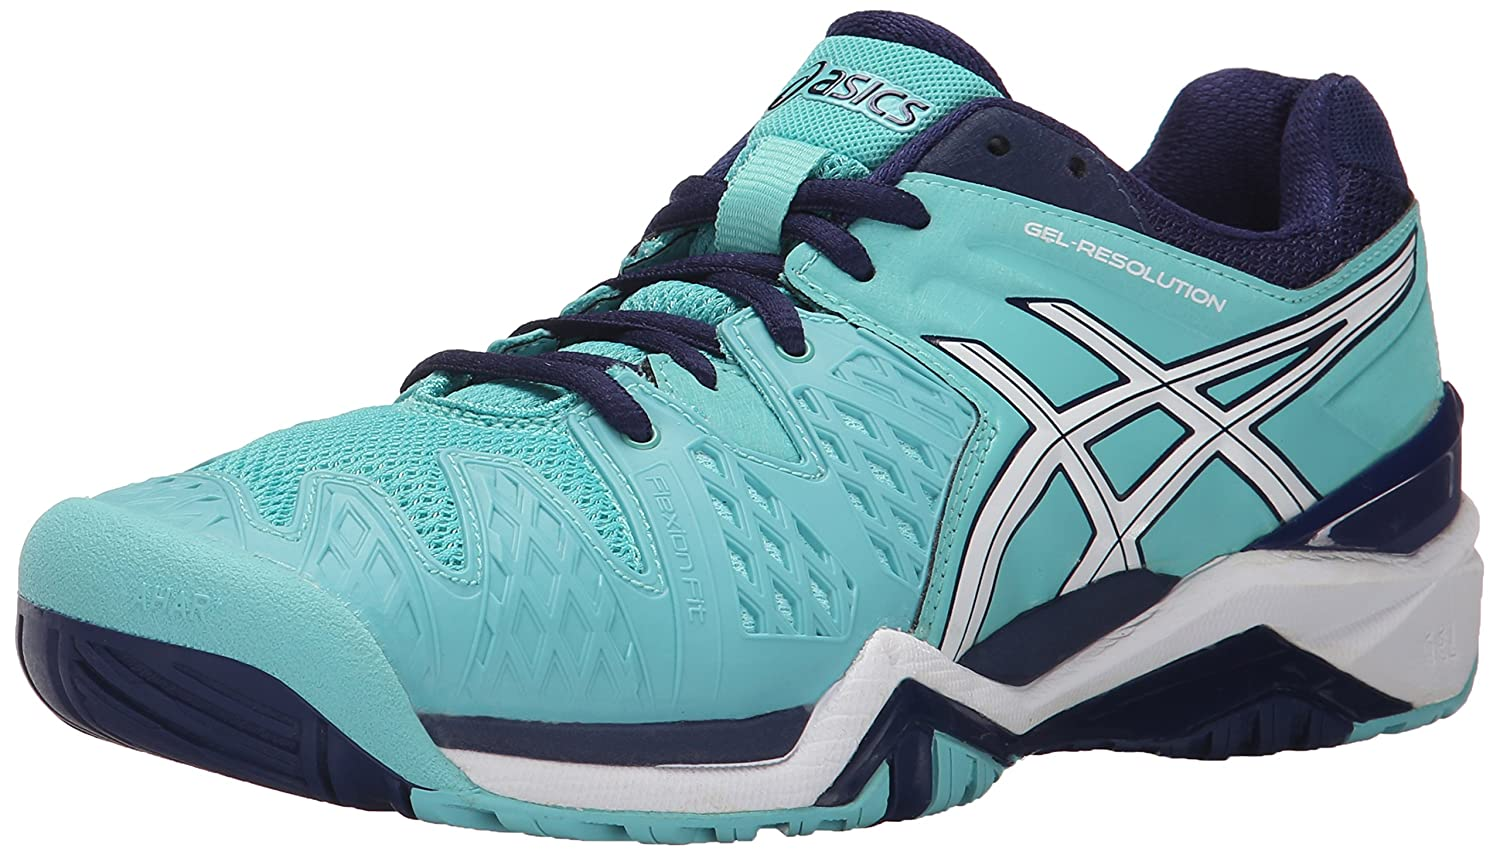 ASICS レディース GEL-Resolution 6 B00XYCPCRW 12 B(M) US|Pool Blue/White/Indigo Blue Pool Blue/White/Indigo Blue 12 B(M) US